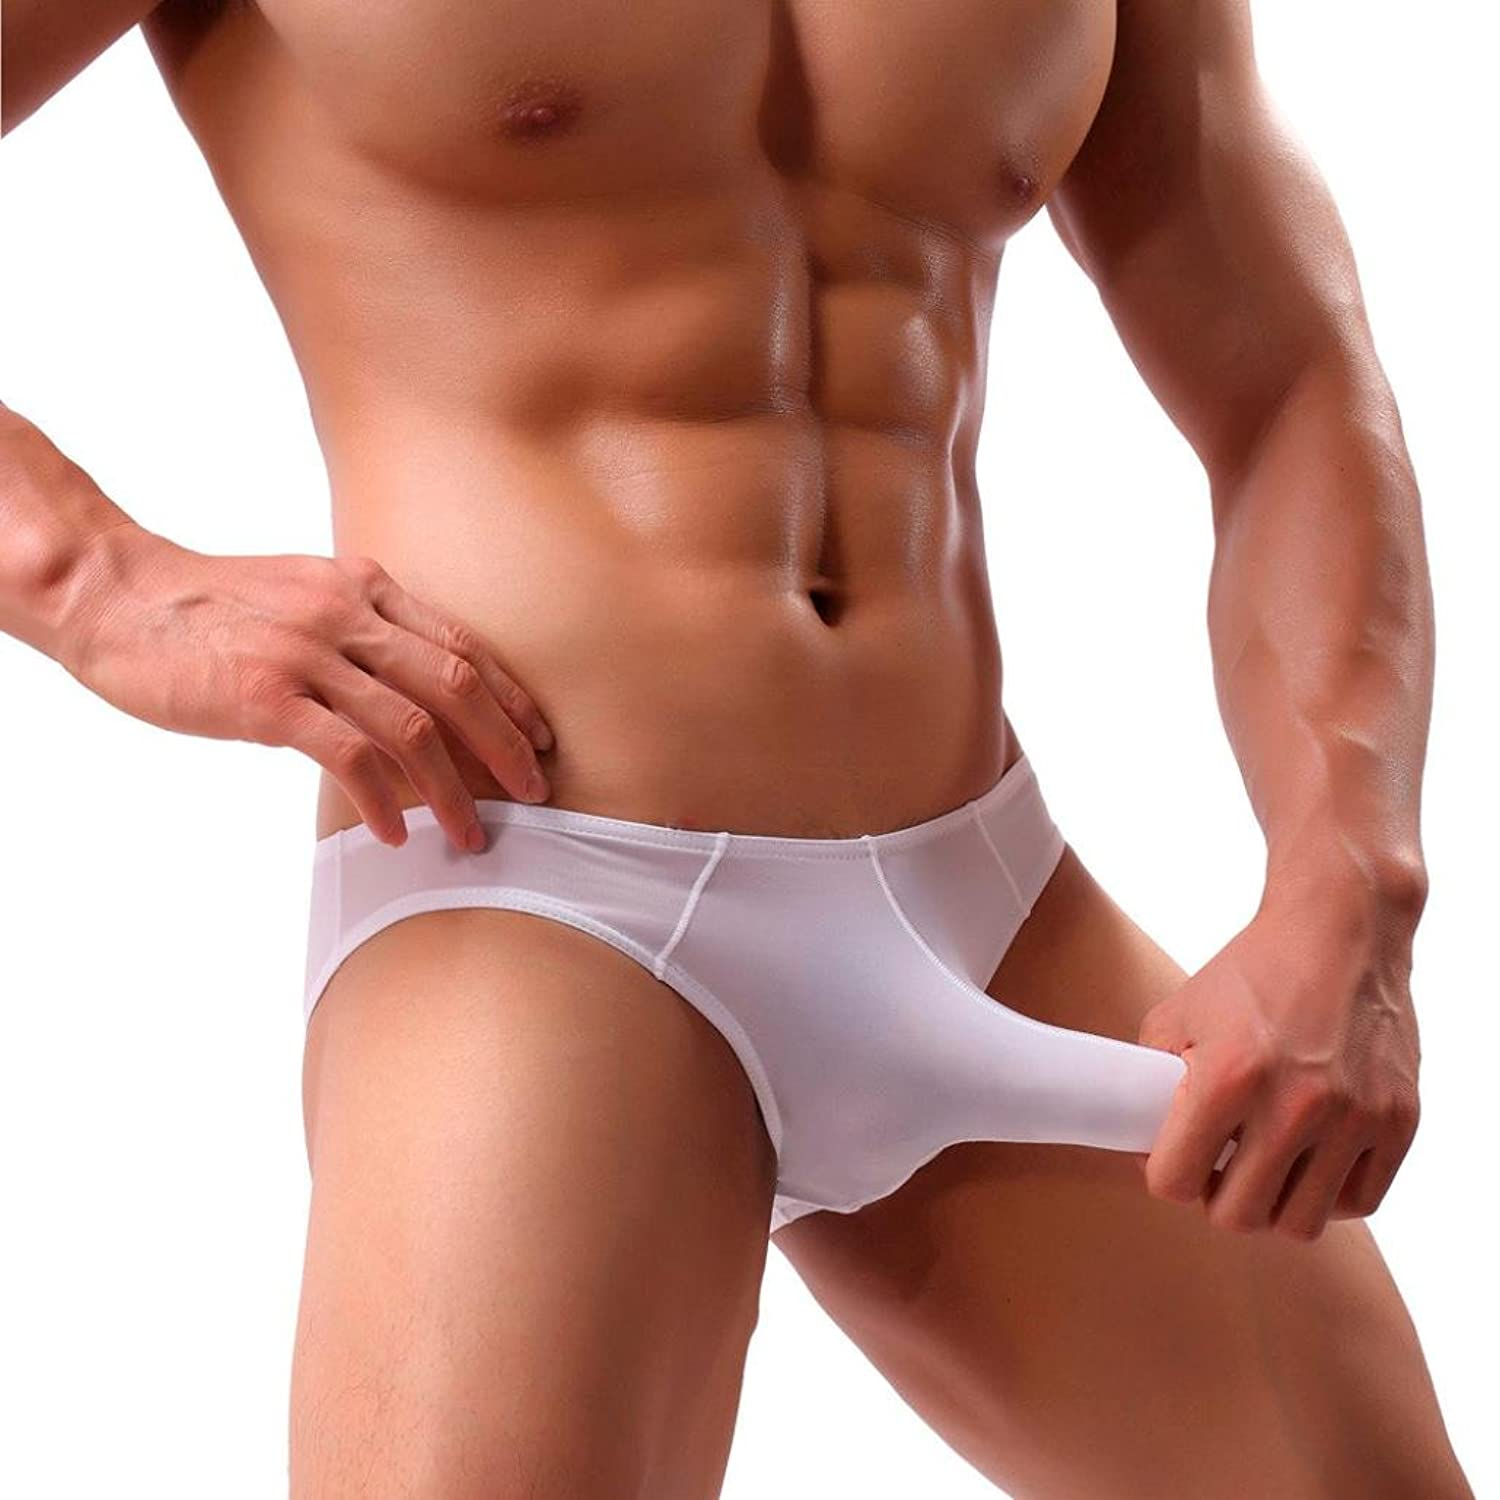 004894b2a926 Buy as many as you want! Obviously also I want. ♂It will make you look more  sexy a perfect gift to yourself or friends ♂elephant underwear,g string men  ...